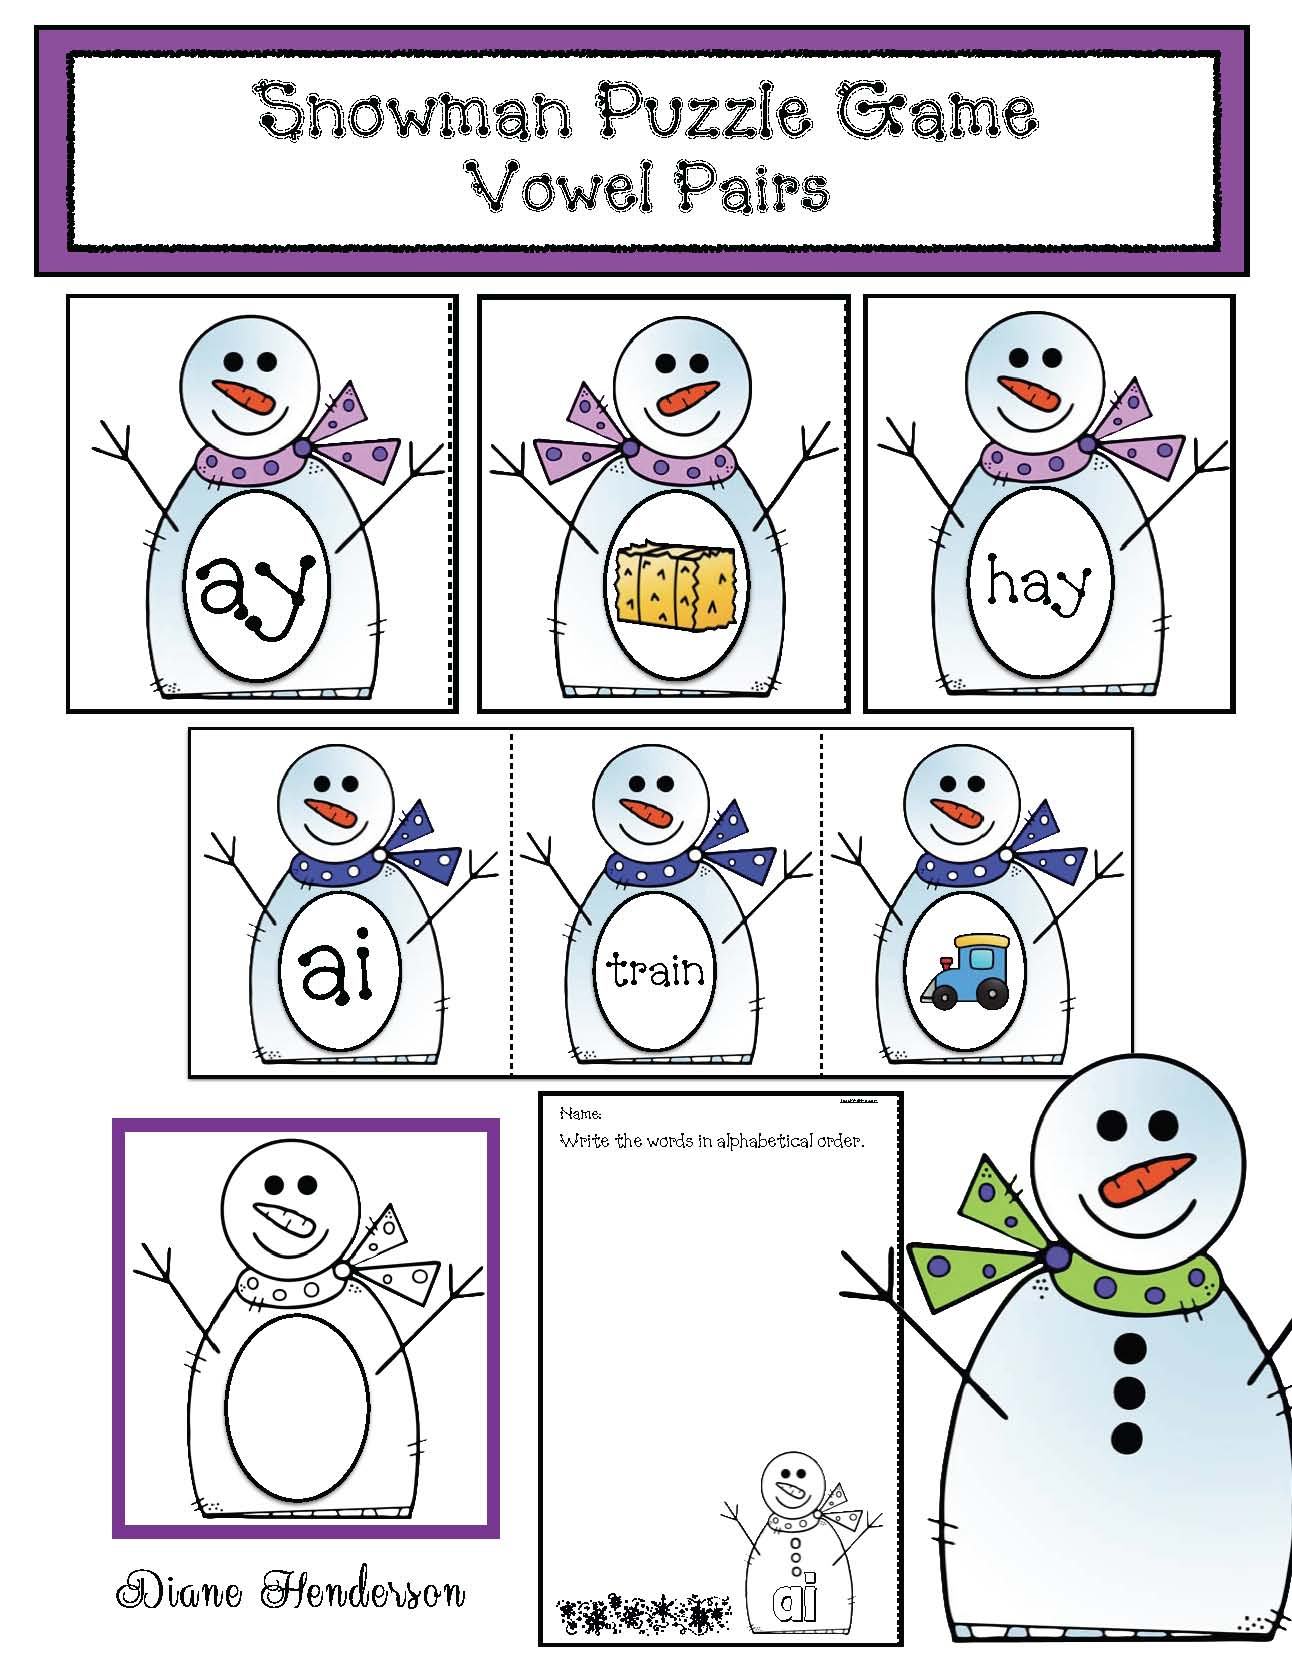 domino math activities, snowman activities, snowman crafts, analog and digital time activities, snowman clocks, snowman centers, snowman worksheets, vowel pair activities